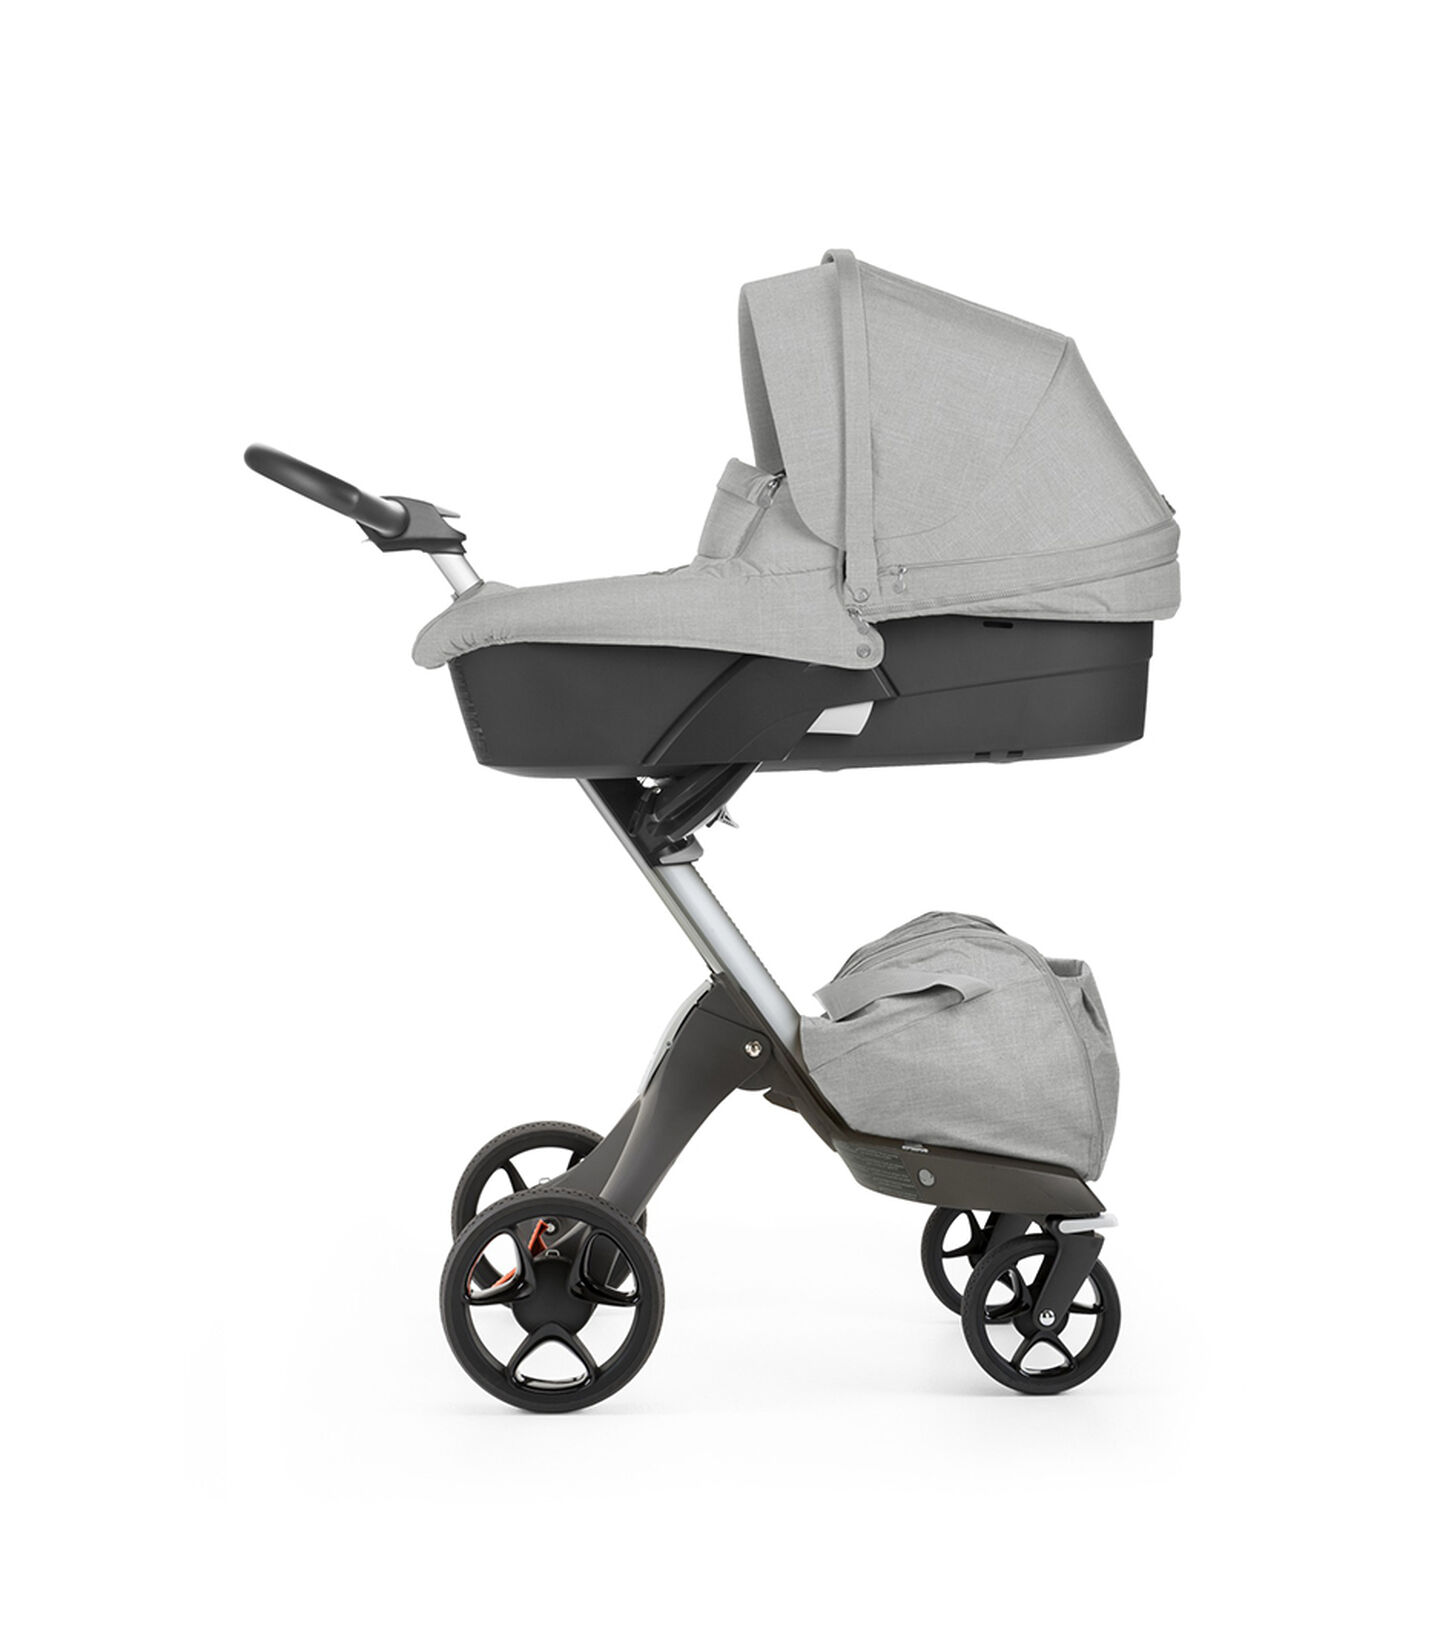 Stokke® Xplory® with Carry Cot, Grey Melange. New wheels 2016.